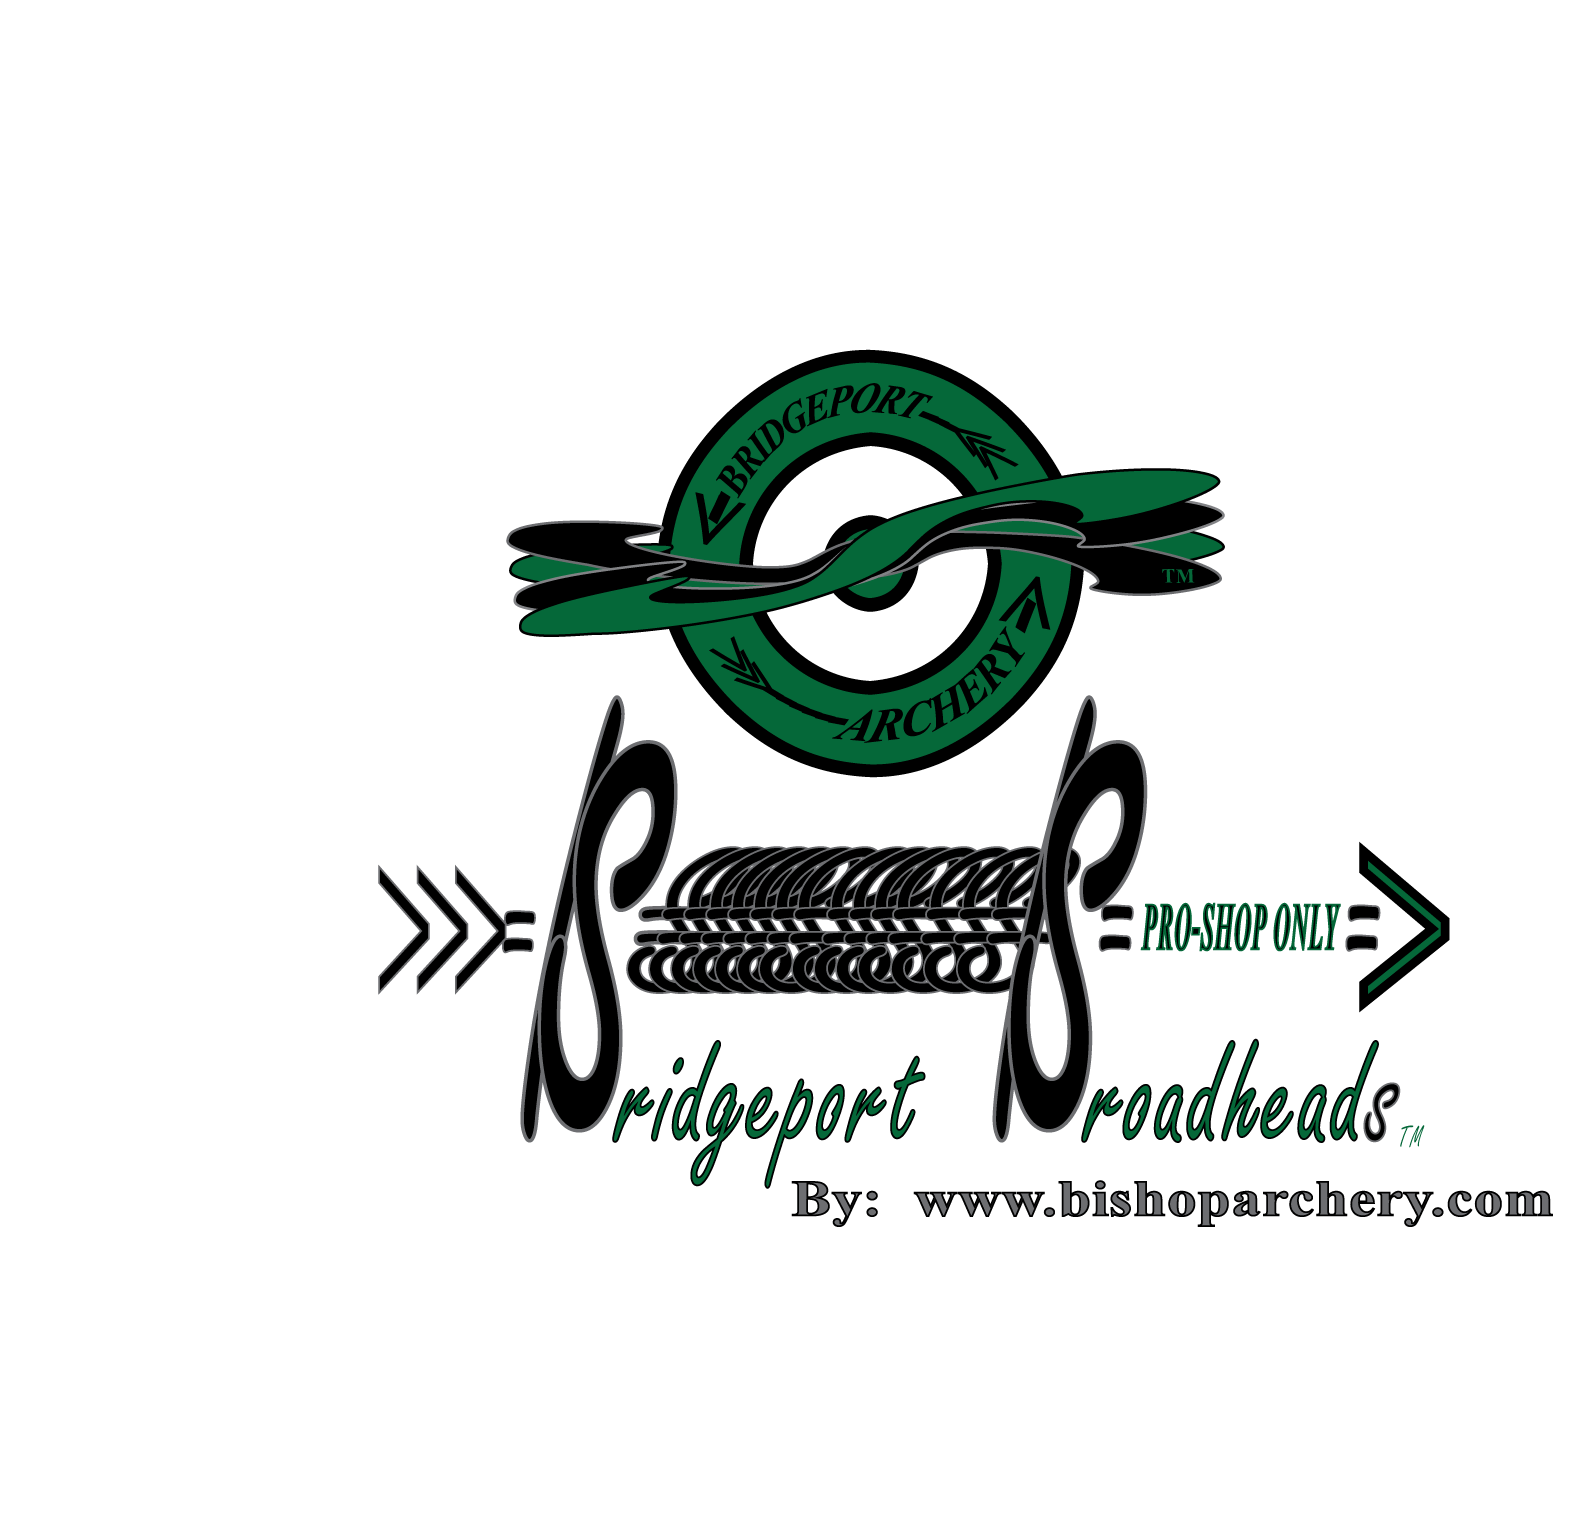 06242016-bridgeport-archery-broadheads-ssssss-logo-by-bishop-60.png